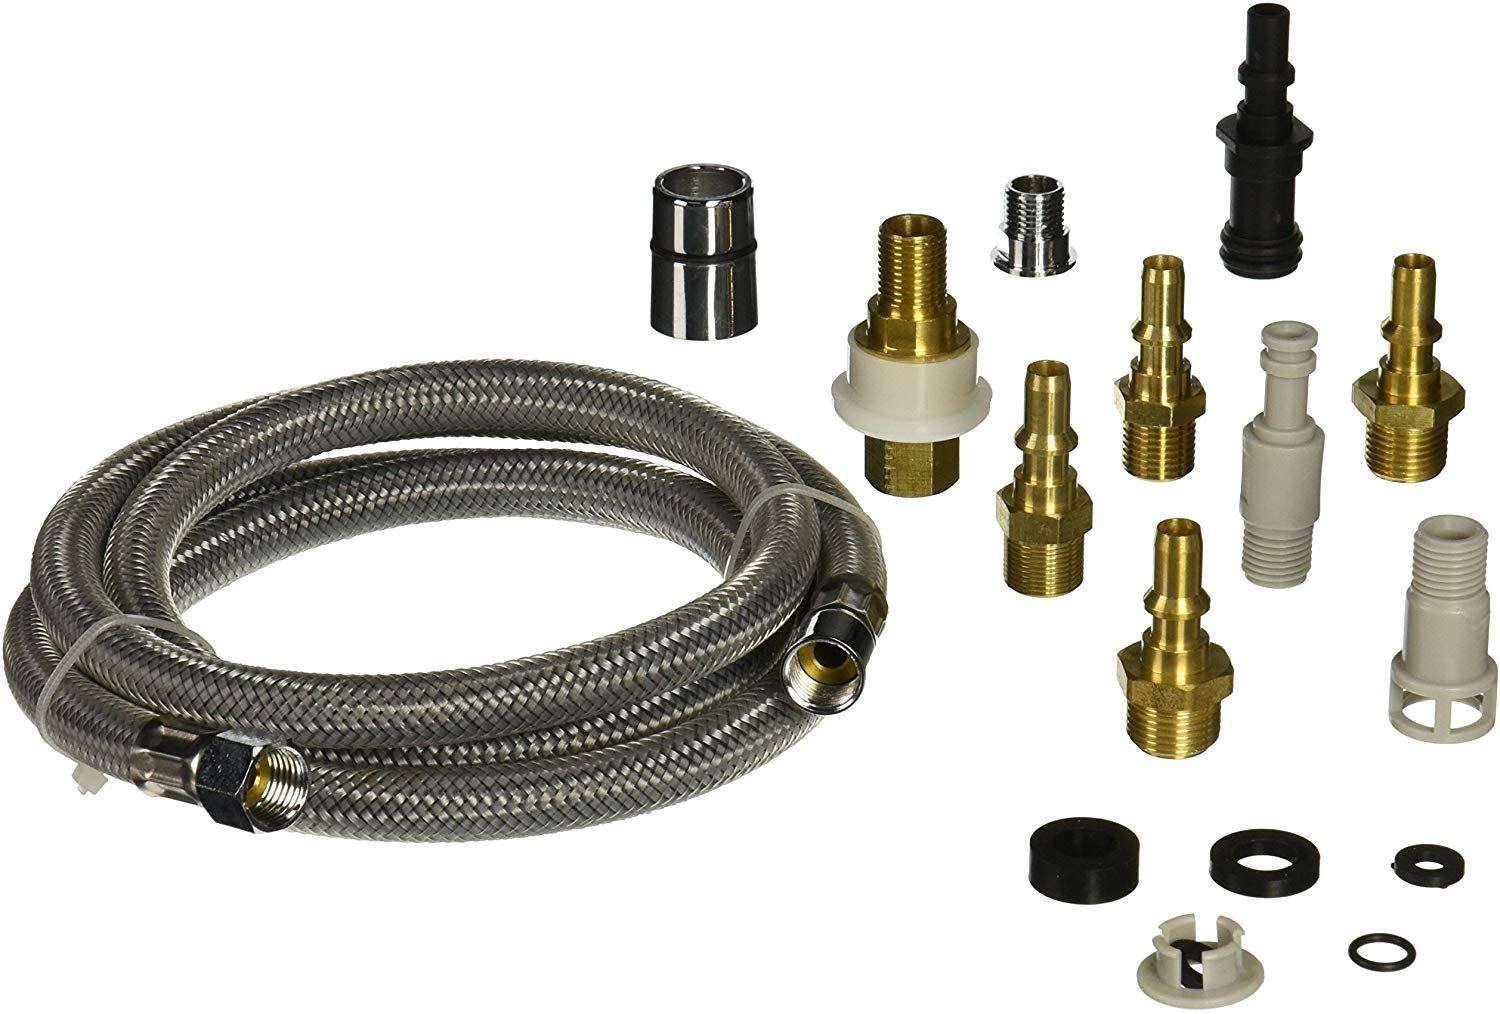 danco kitchen faucet pull out spray hose replacement kit for pullout sprayer heads quick connect adapters 10 piece adapter kit 57 inch nylon